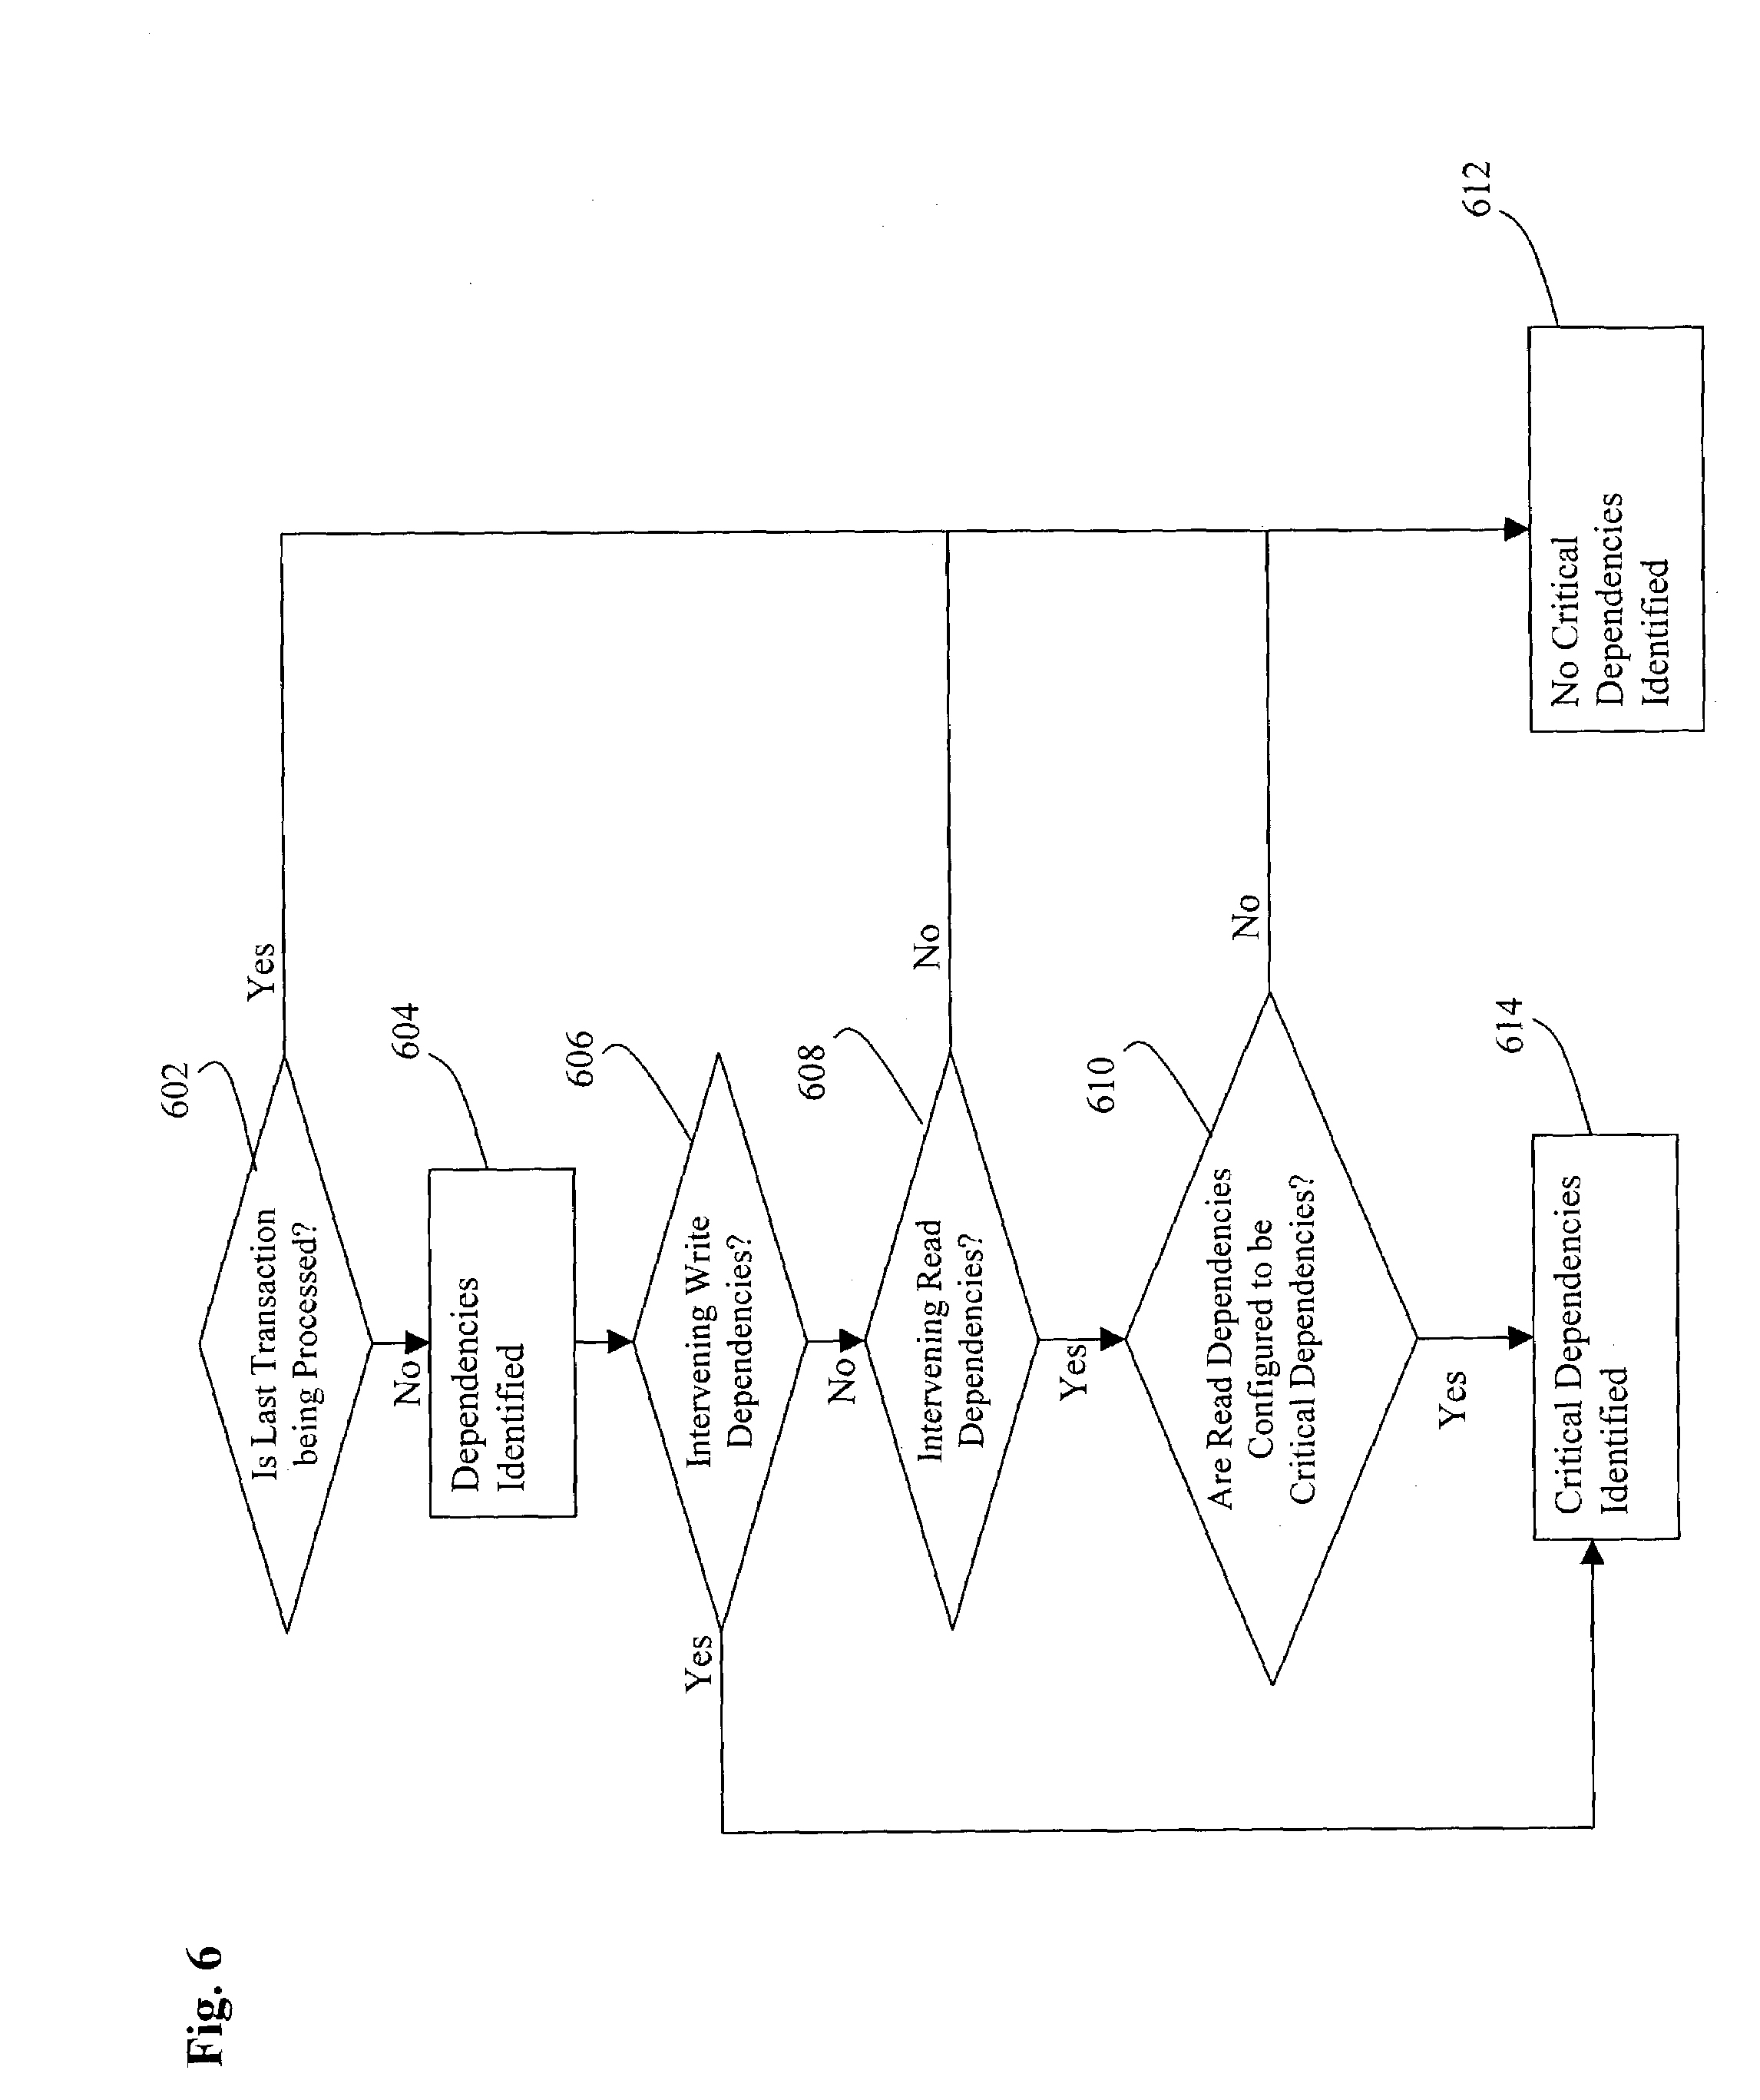 patent us8650169 - method and mechanism for identifying transaction on a row of data